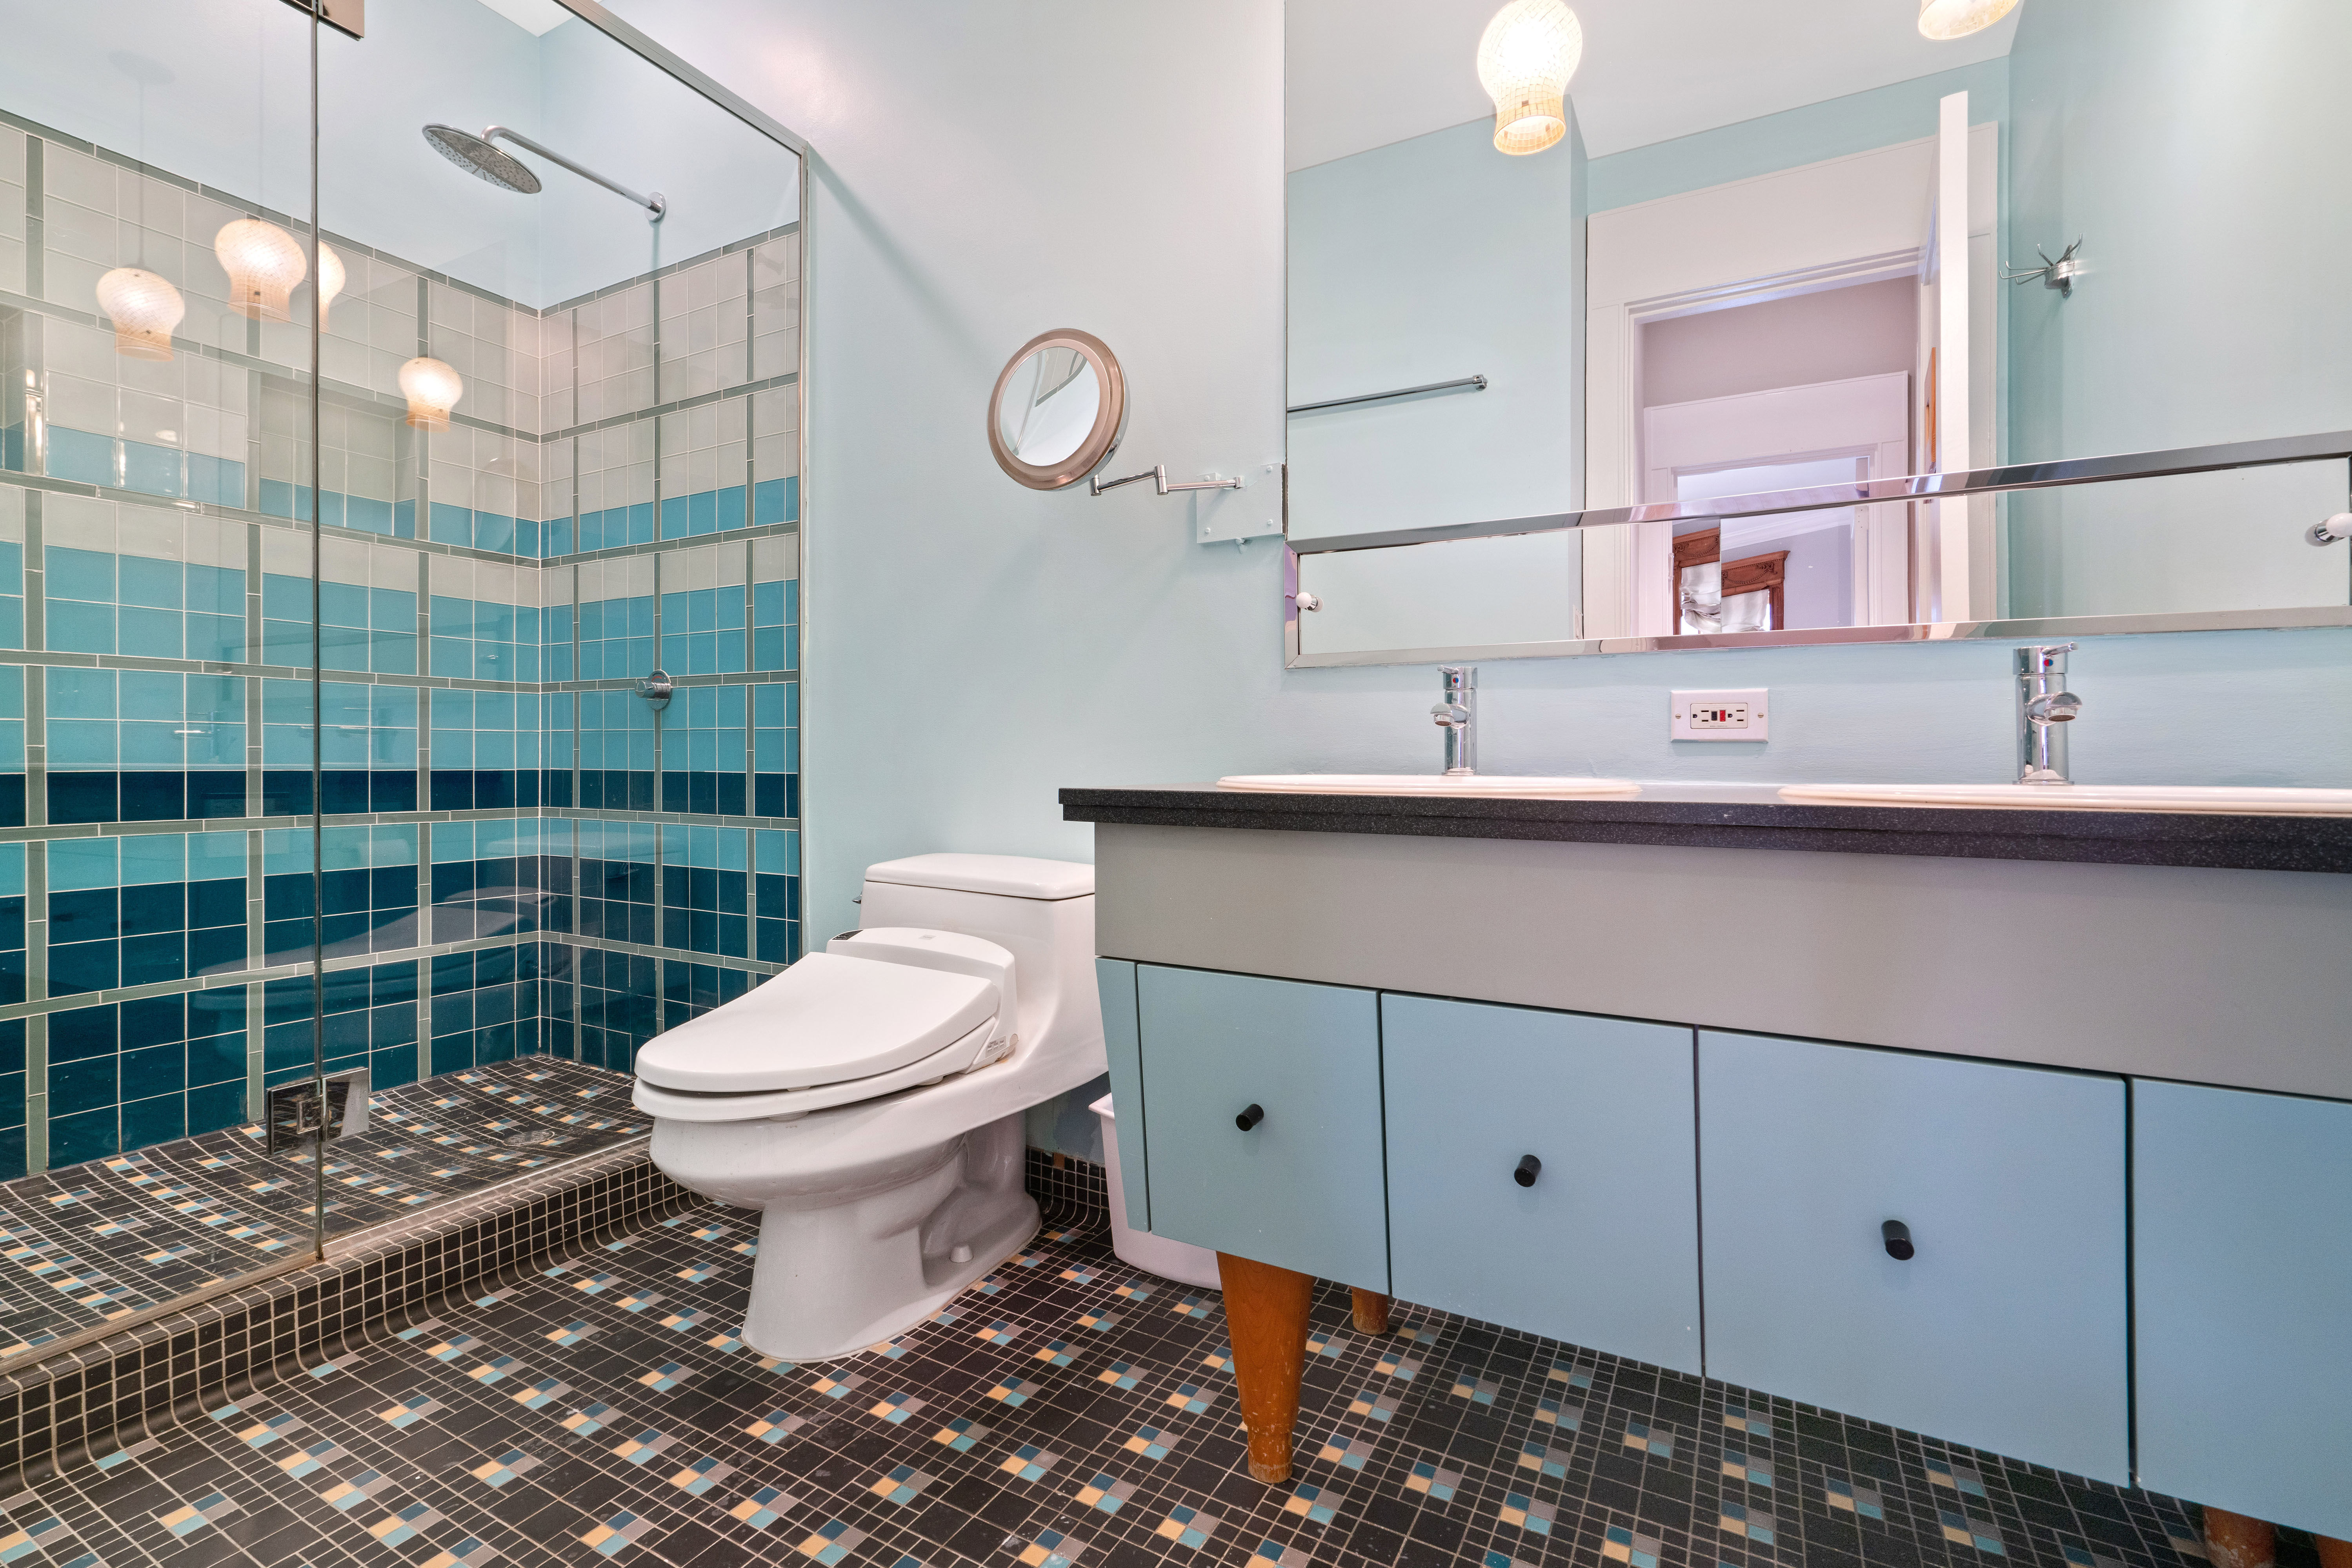 594 2nd St Photo 7 - BROWNSTONER-LISTING-47512a55ccfbbeb19b0a8fb315f62163